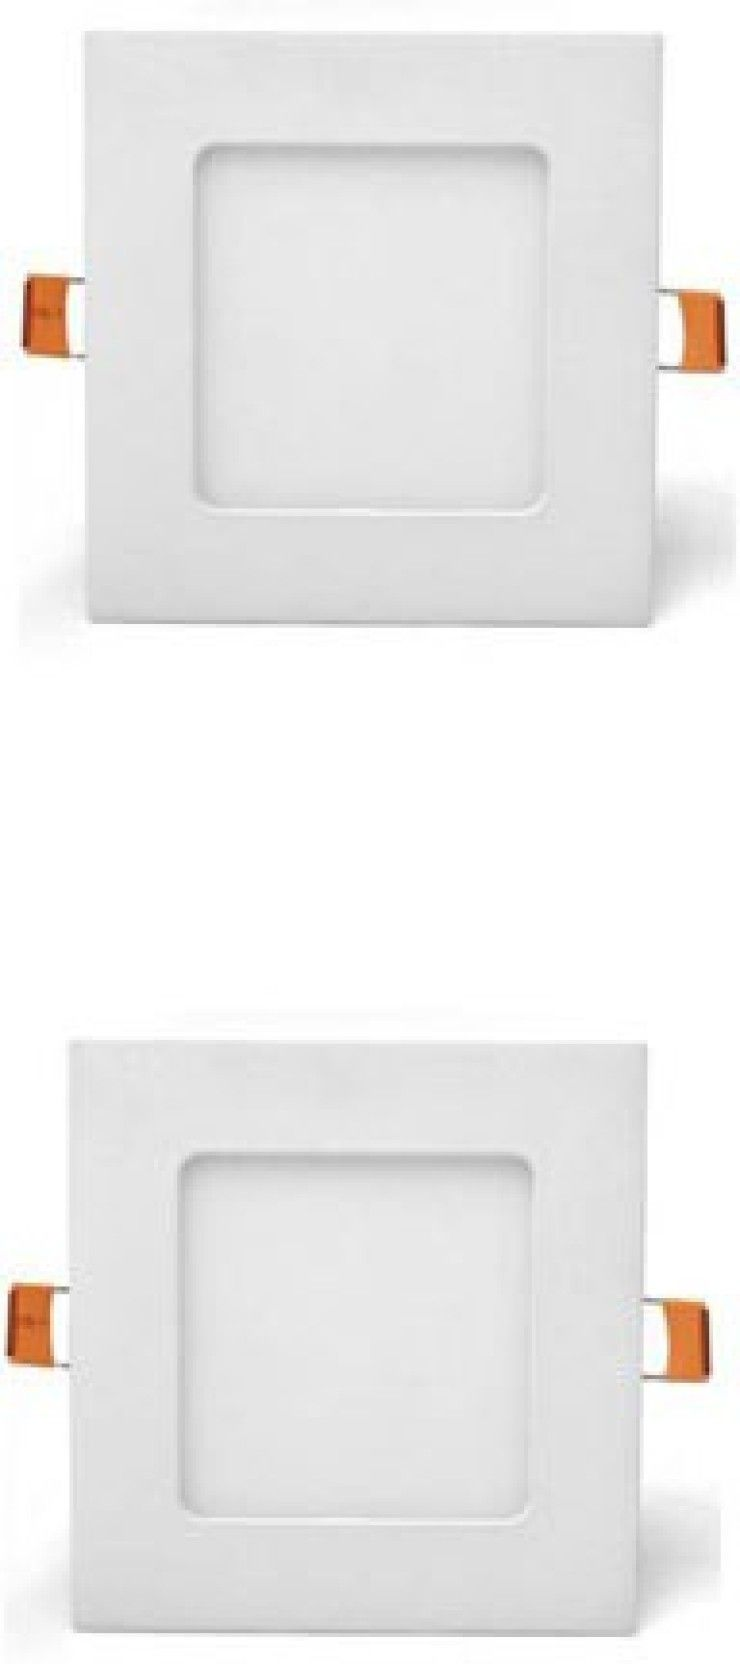 Galaxy 3 Watt Slim Panel Light Square Warm White Yellowish Pack Of 2 Recessed Ceiling Lamp